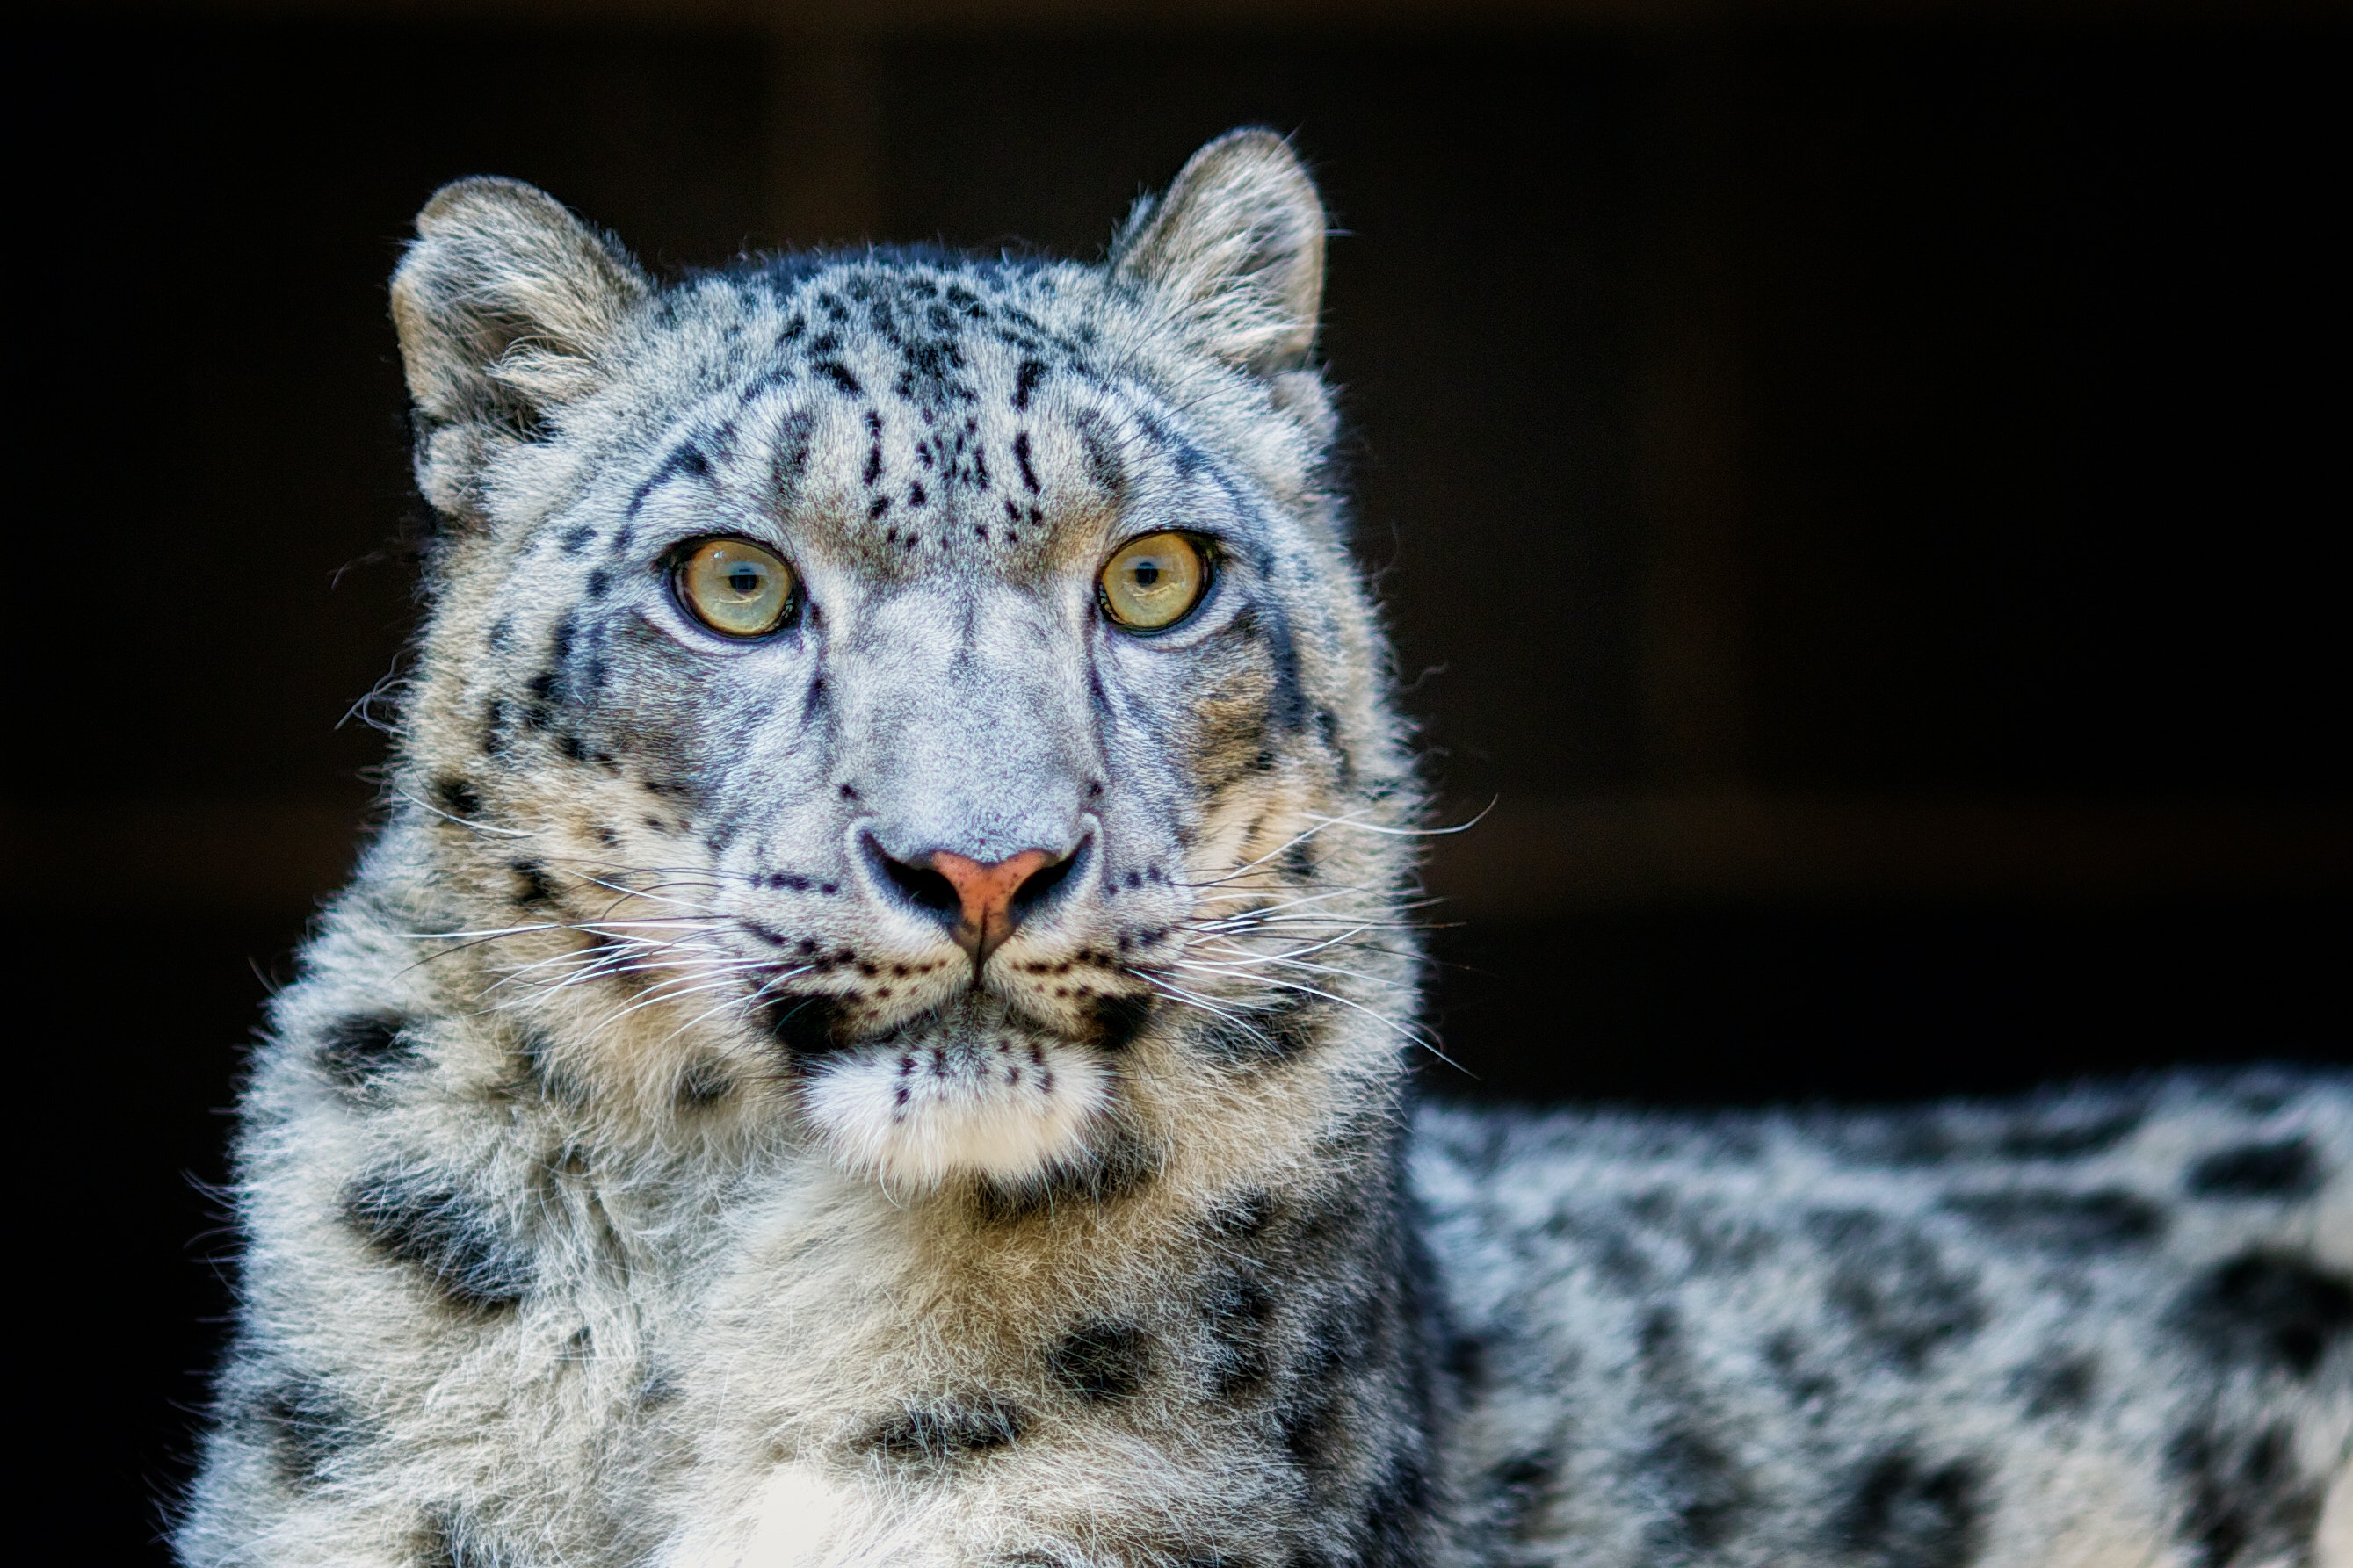 Close-Up Photography Of Leopard · Free Stock Photo